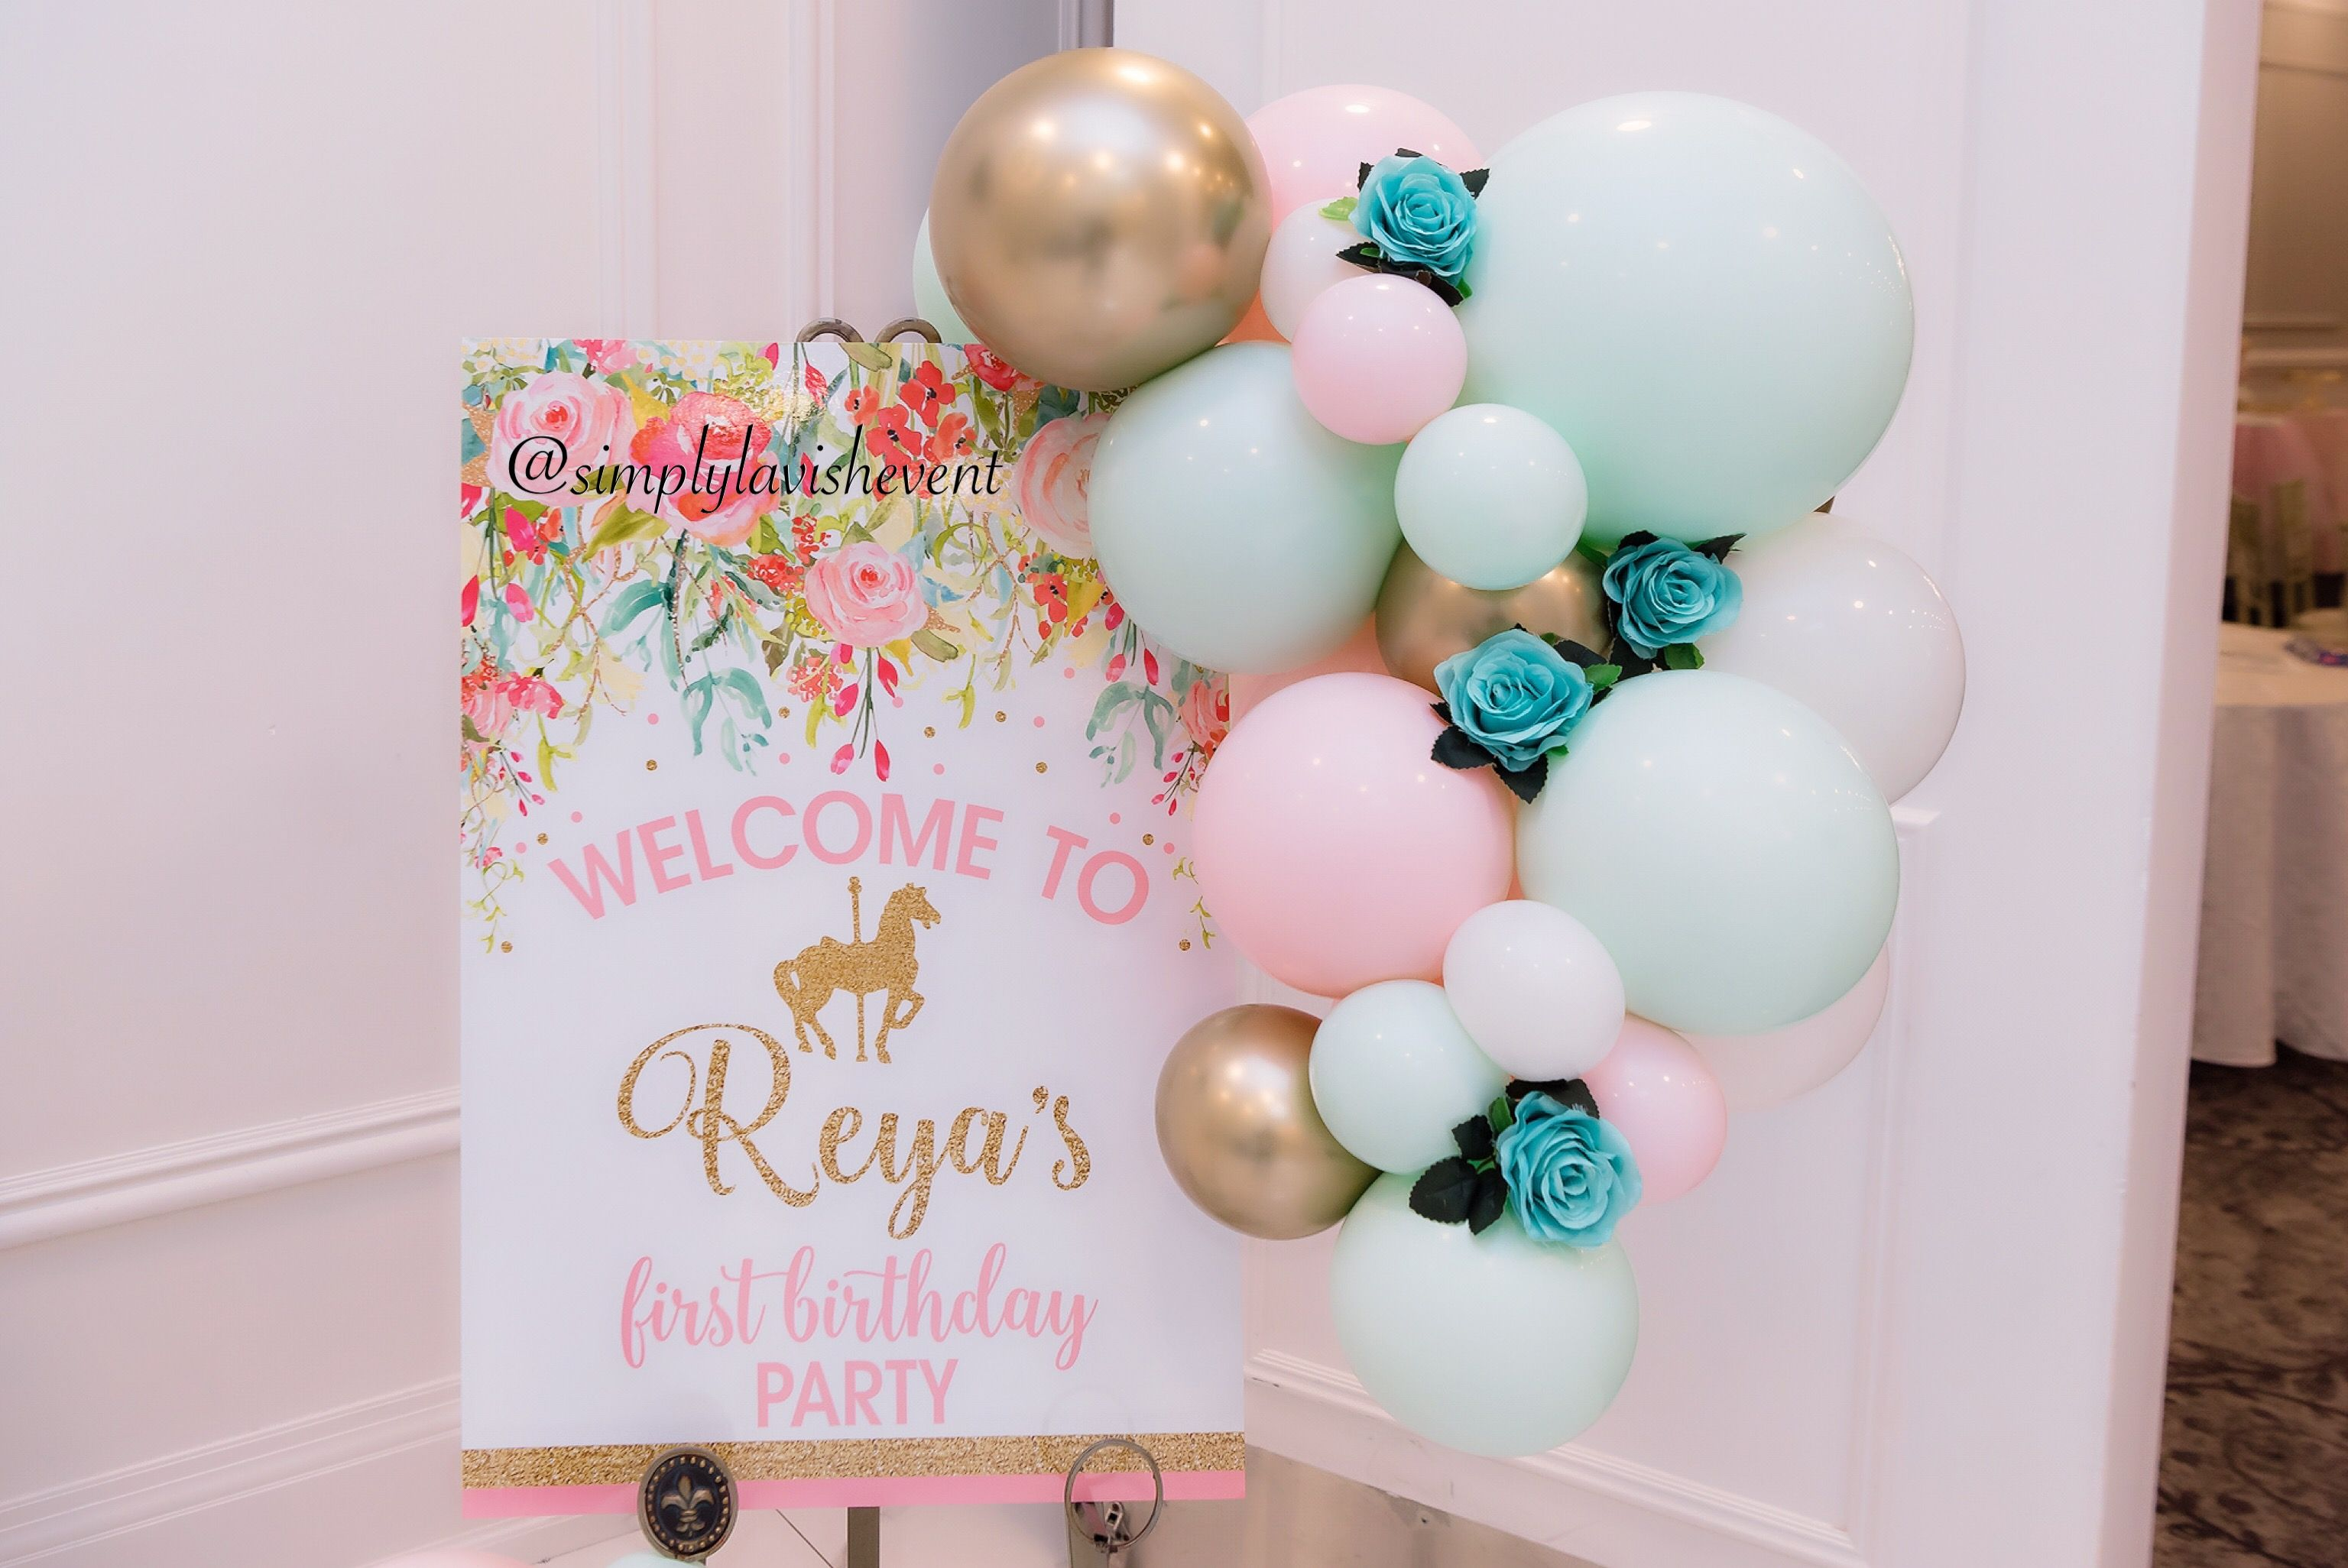 A Beautiful Cascading Balloon Garland Made This Welcome Sign Even